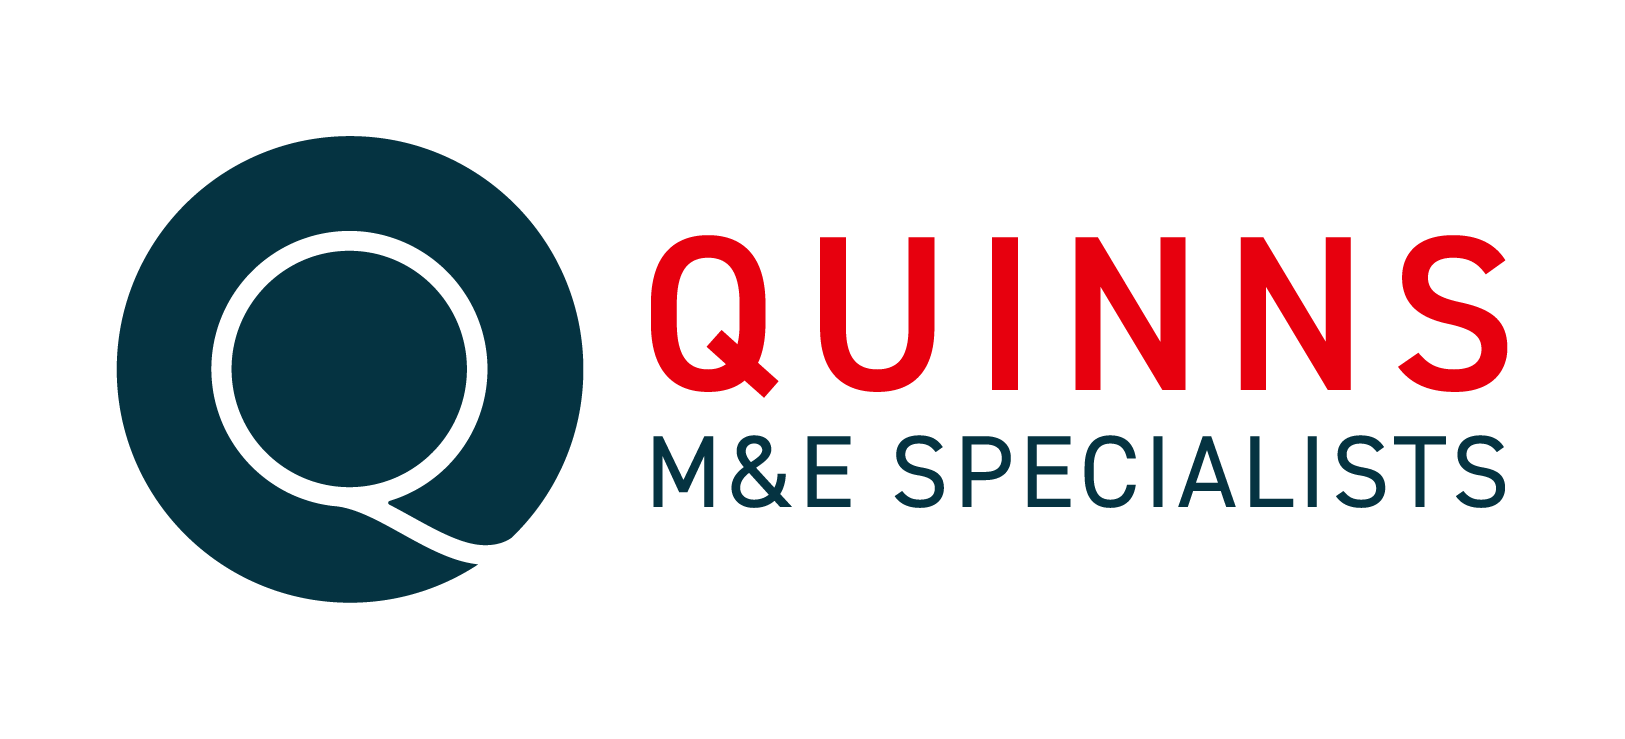 Quinns M&E Specialists